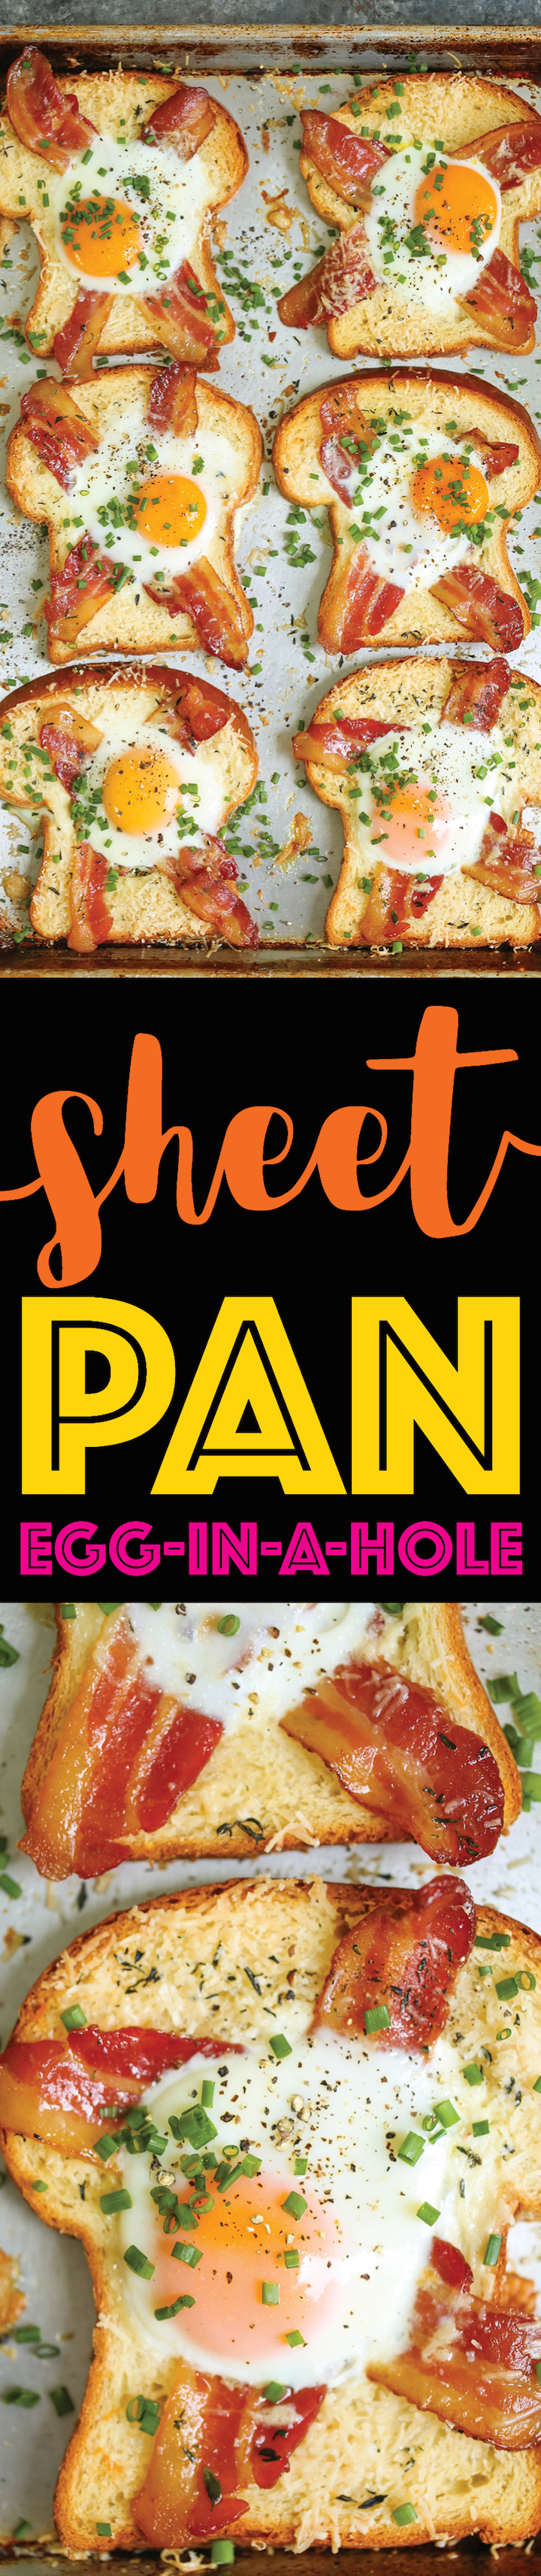 Sheet Pan Egg-in-a-Hole - A quick classic that comes together right on a sheet pan!!! Less mess, less fuss and just way easier than the stovetop version!